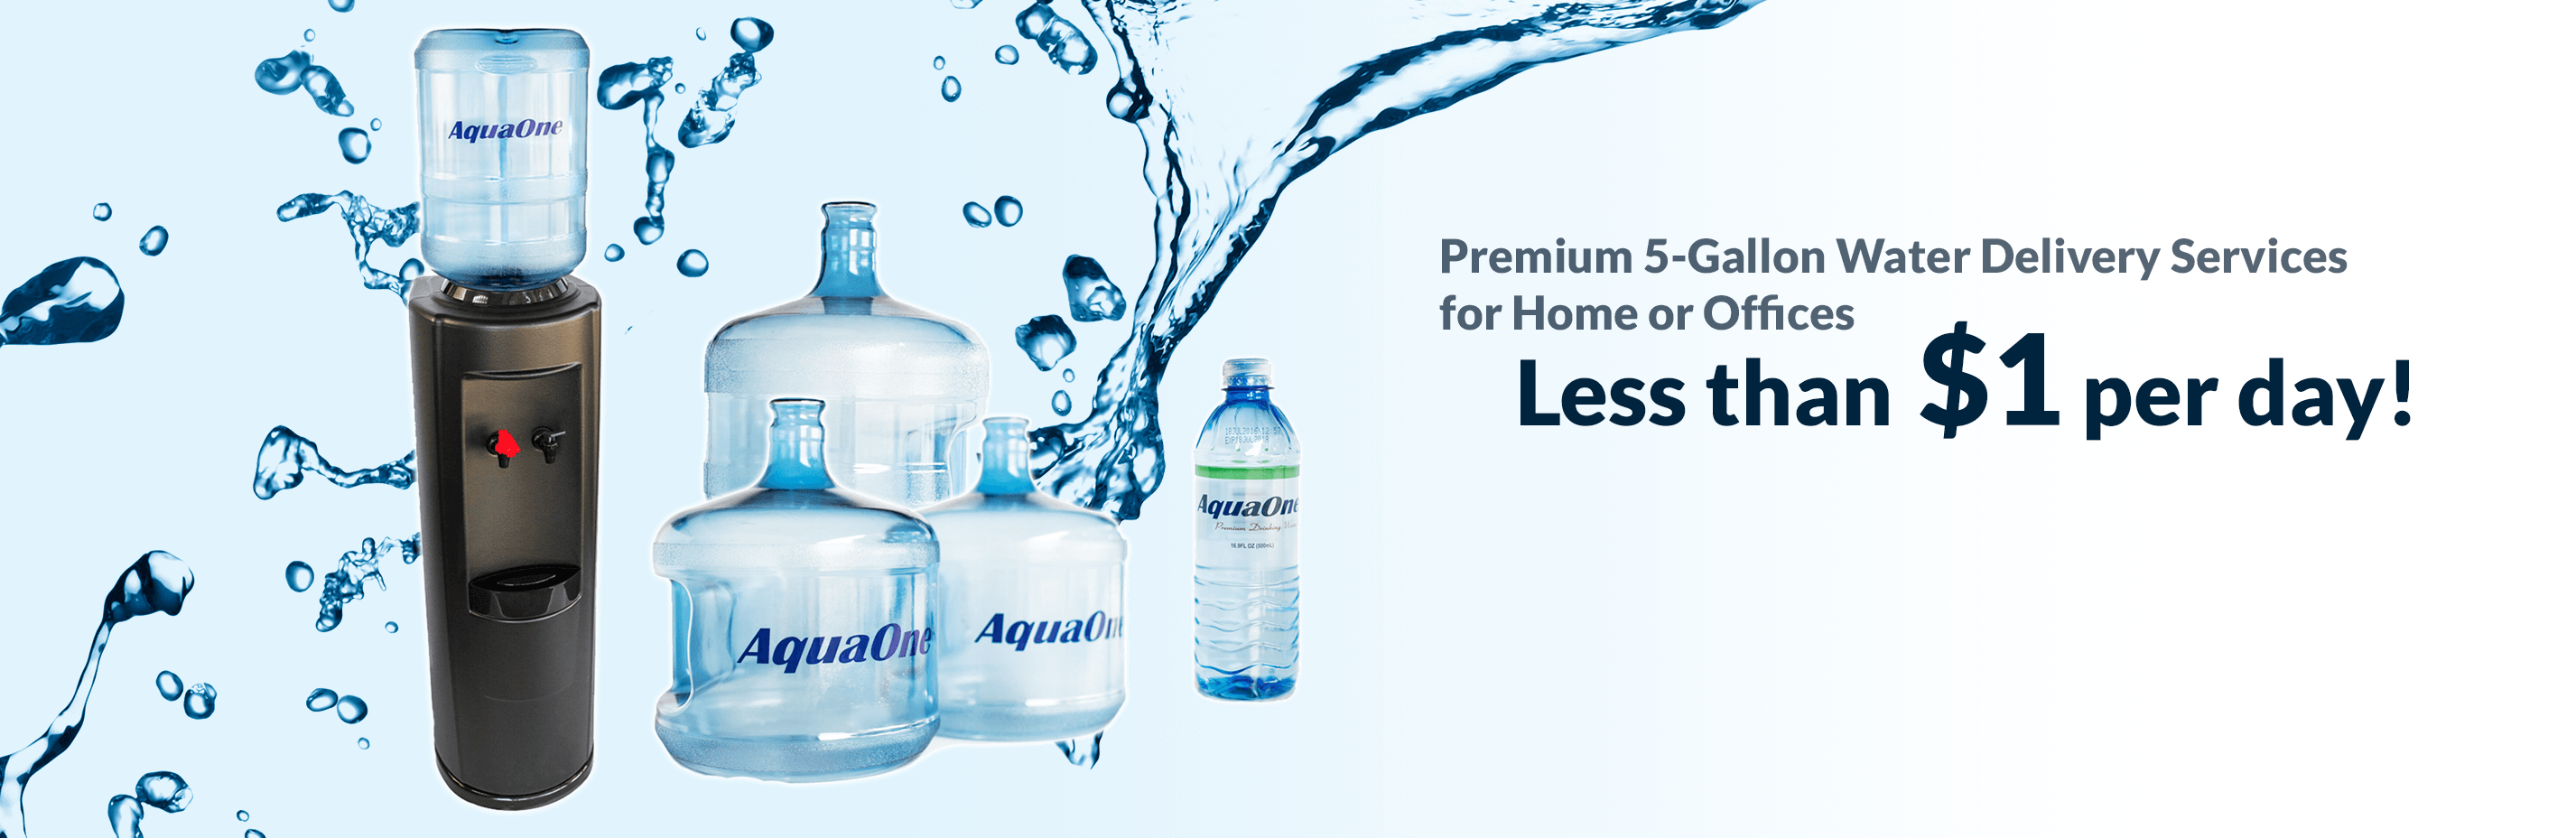 Premium 5-Gallon Water Delivery Services for Home or Offices for less than grocery store prices from Aquaone Lubbock tx, Amarillo tx, wichita falls tx, Abilene tx